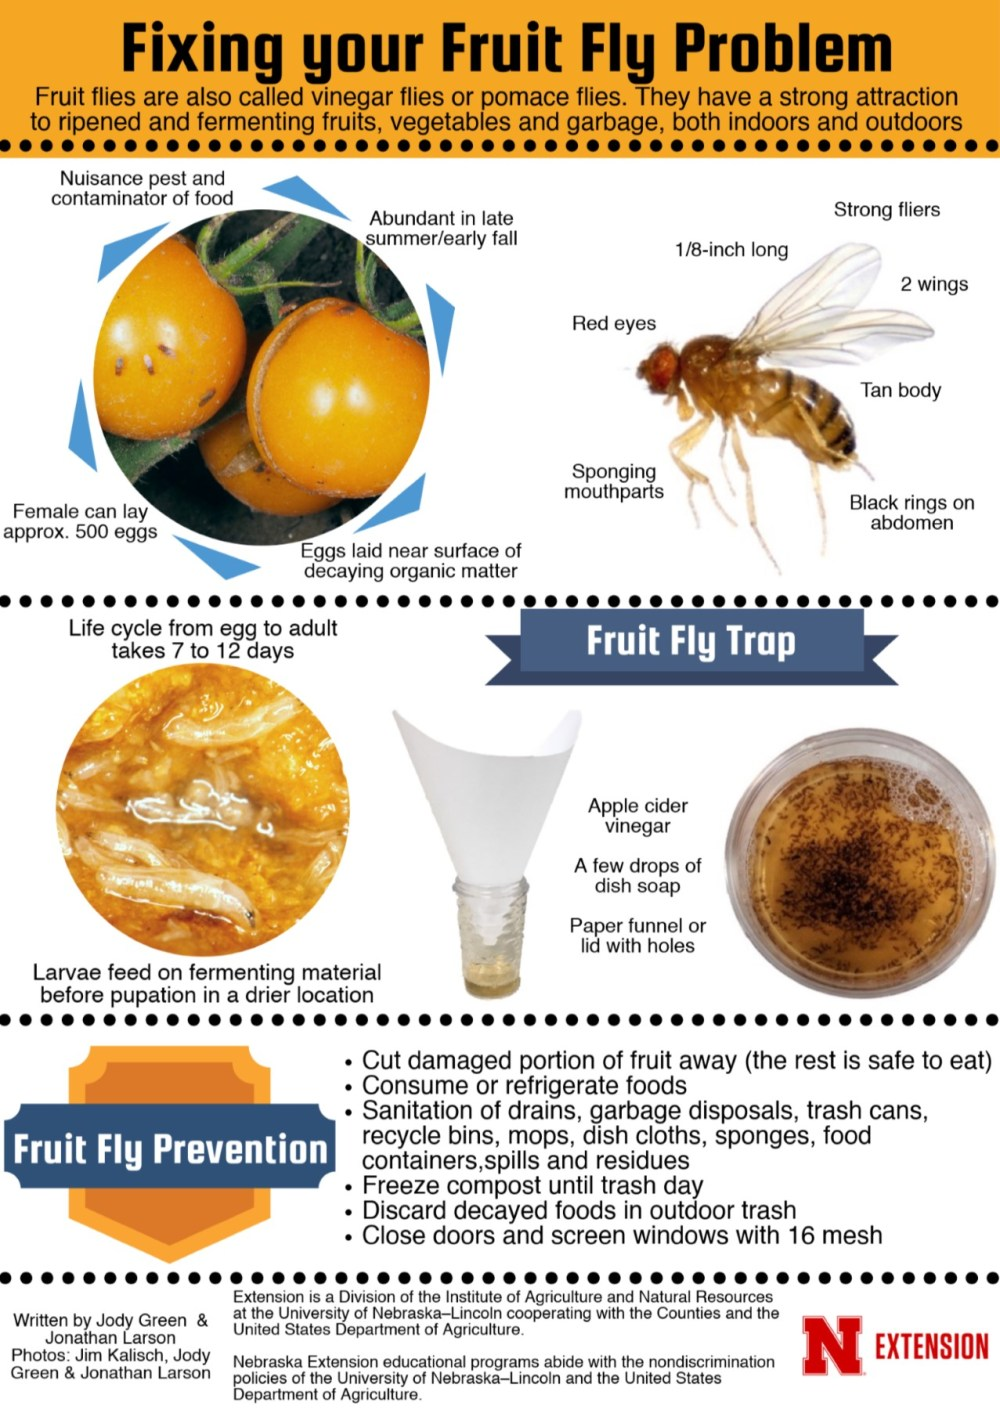 Fruit fly infographic